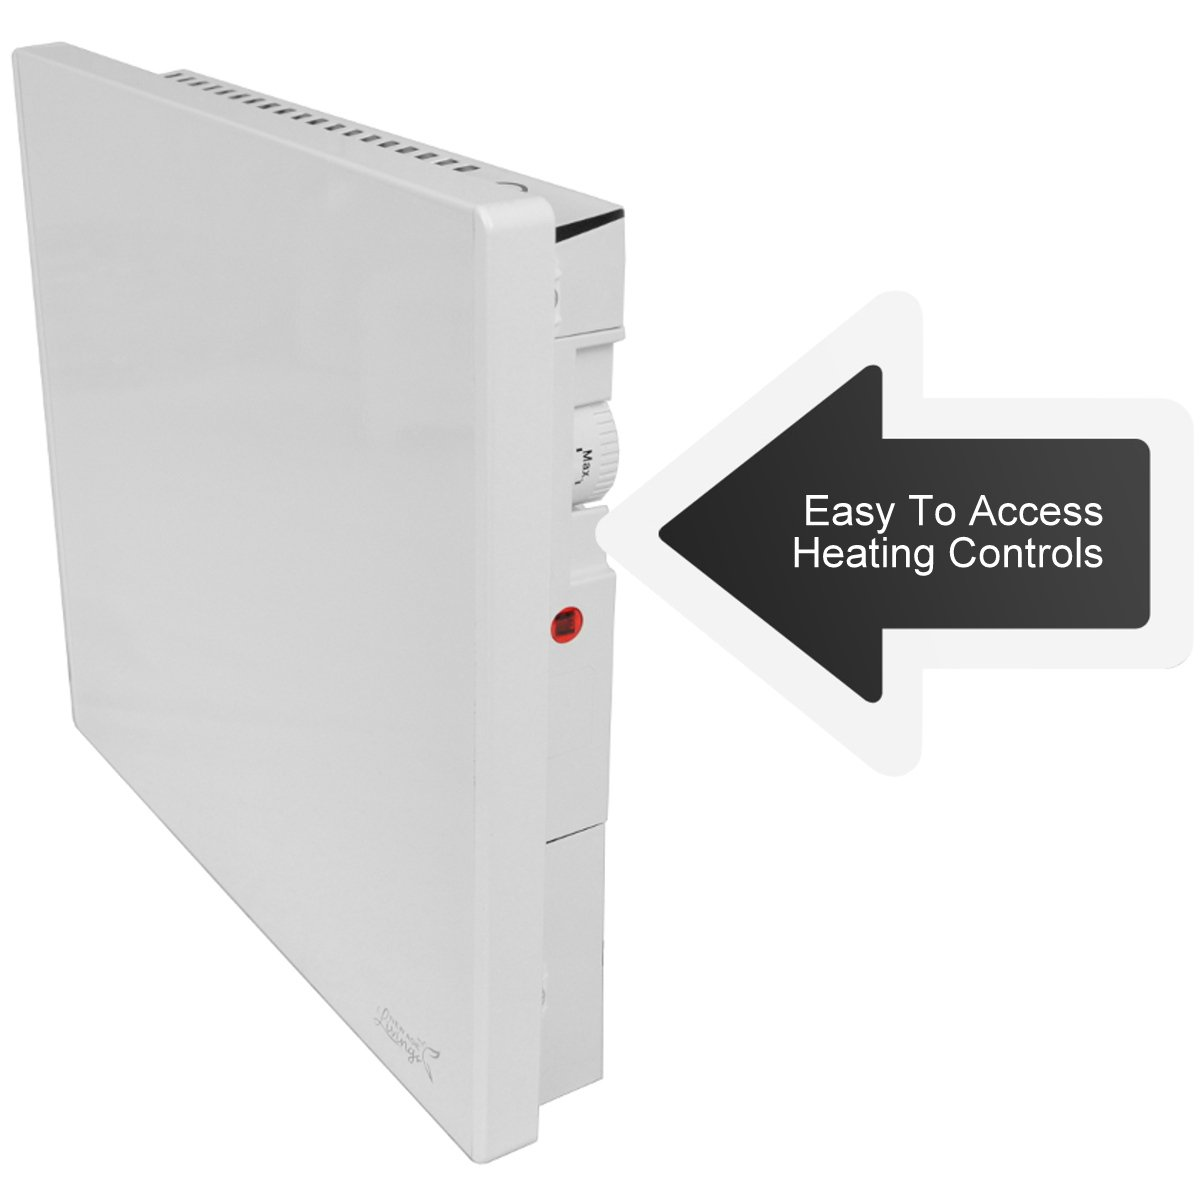 New Age Living Phantom 4 Wall Panel Heater - 400W - Radiant & Convection Heating - Silent with No Moving Parts - TUV Rated for Safe Home Use by New Age Living (Image #5)